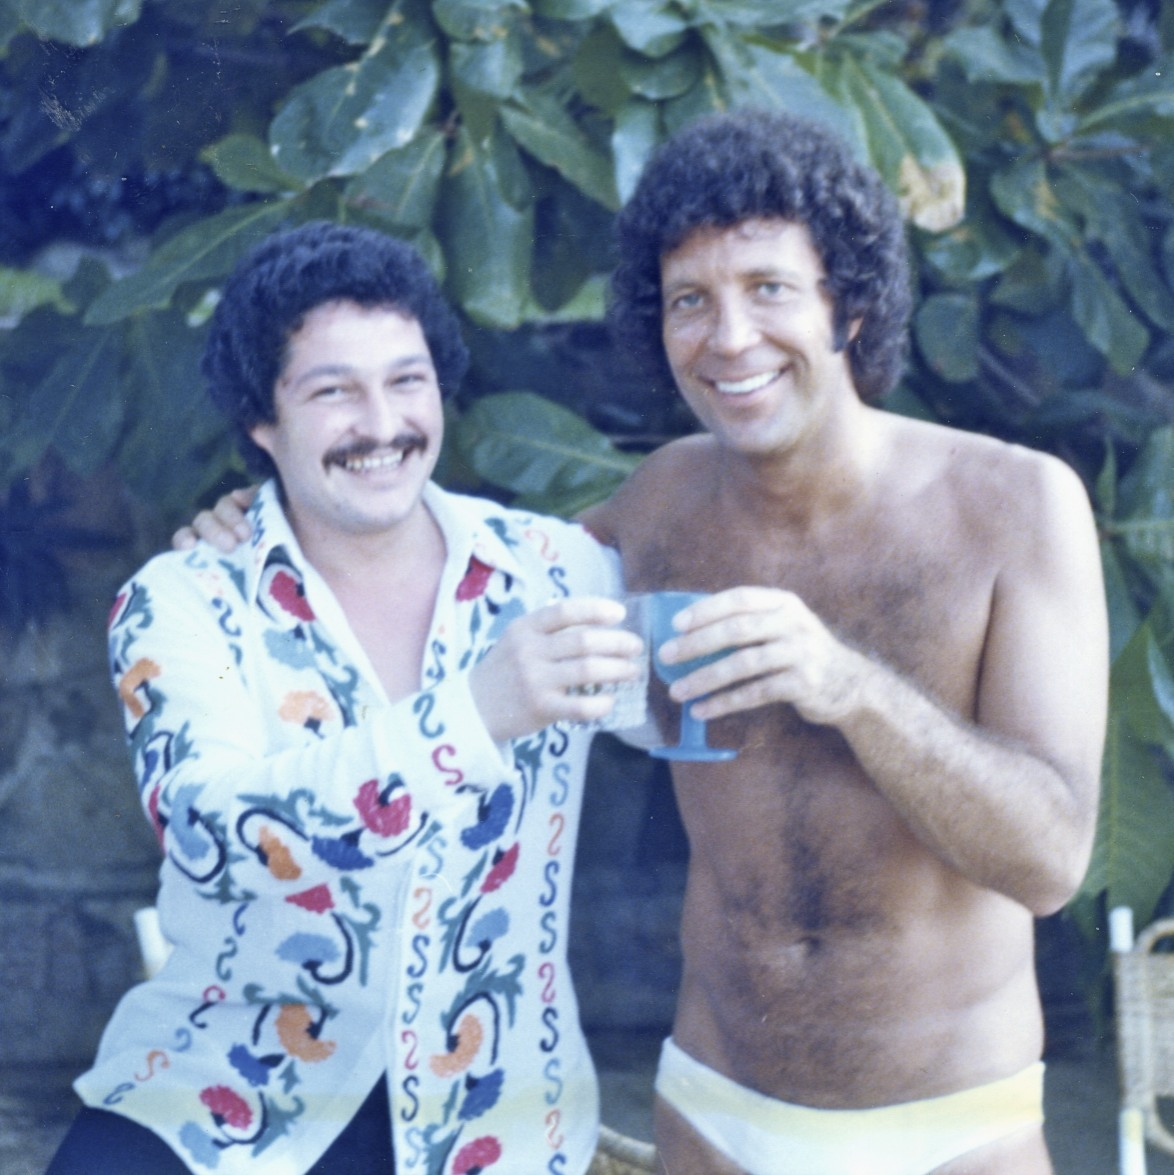 With Tom Jones